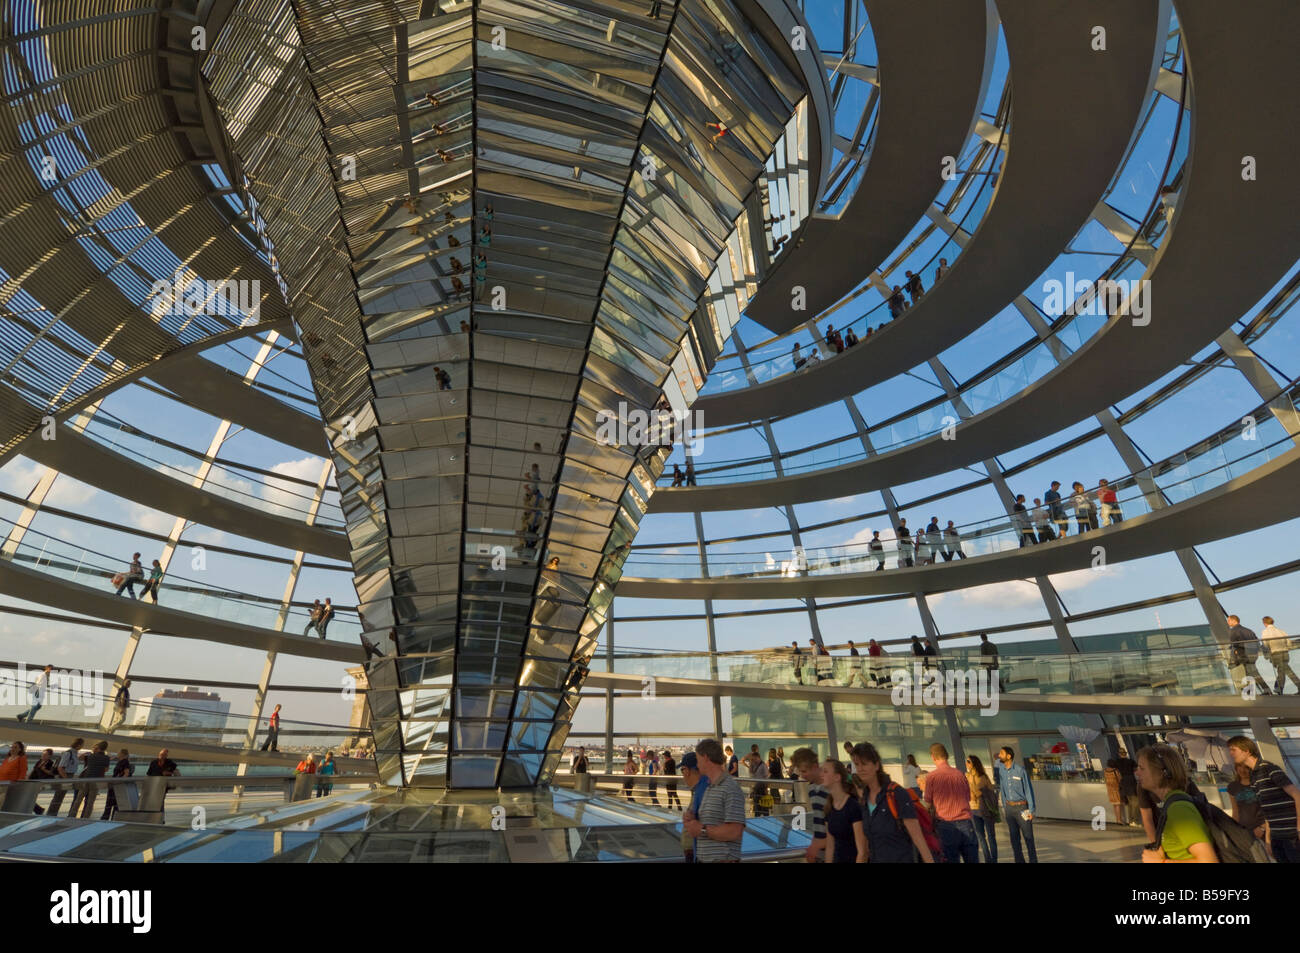 Visitors walk up a spiralling ramp around the cone shaped funnel in the dome cupola, Berlin, Germany Stock Photo